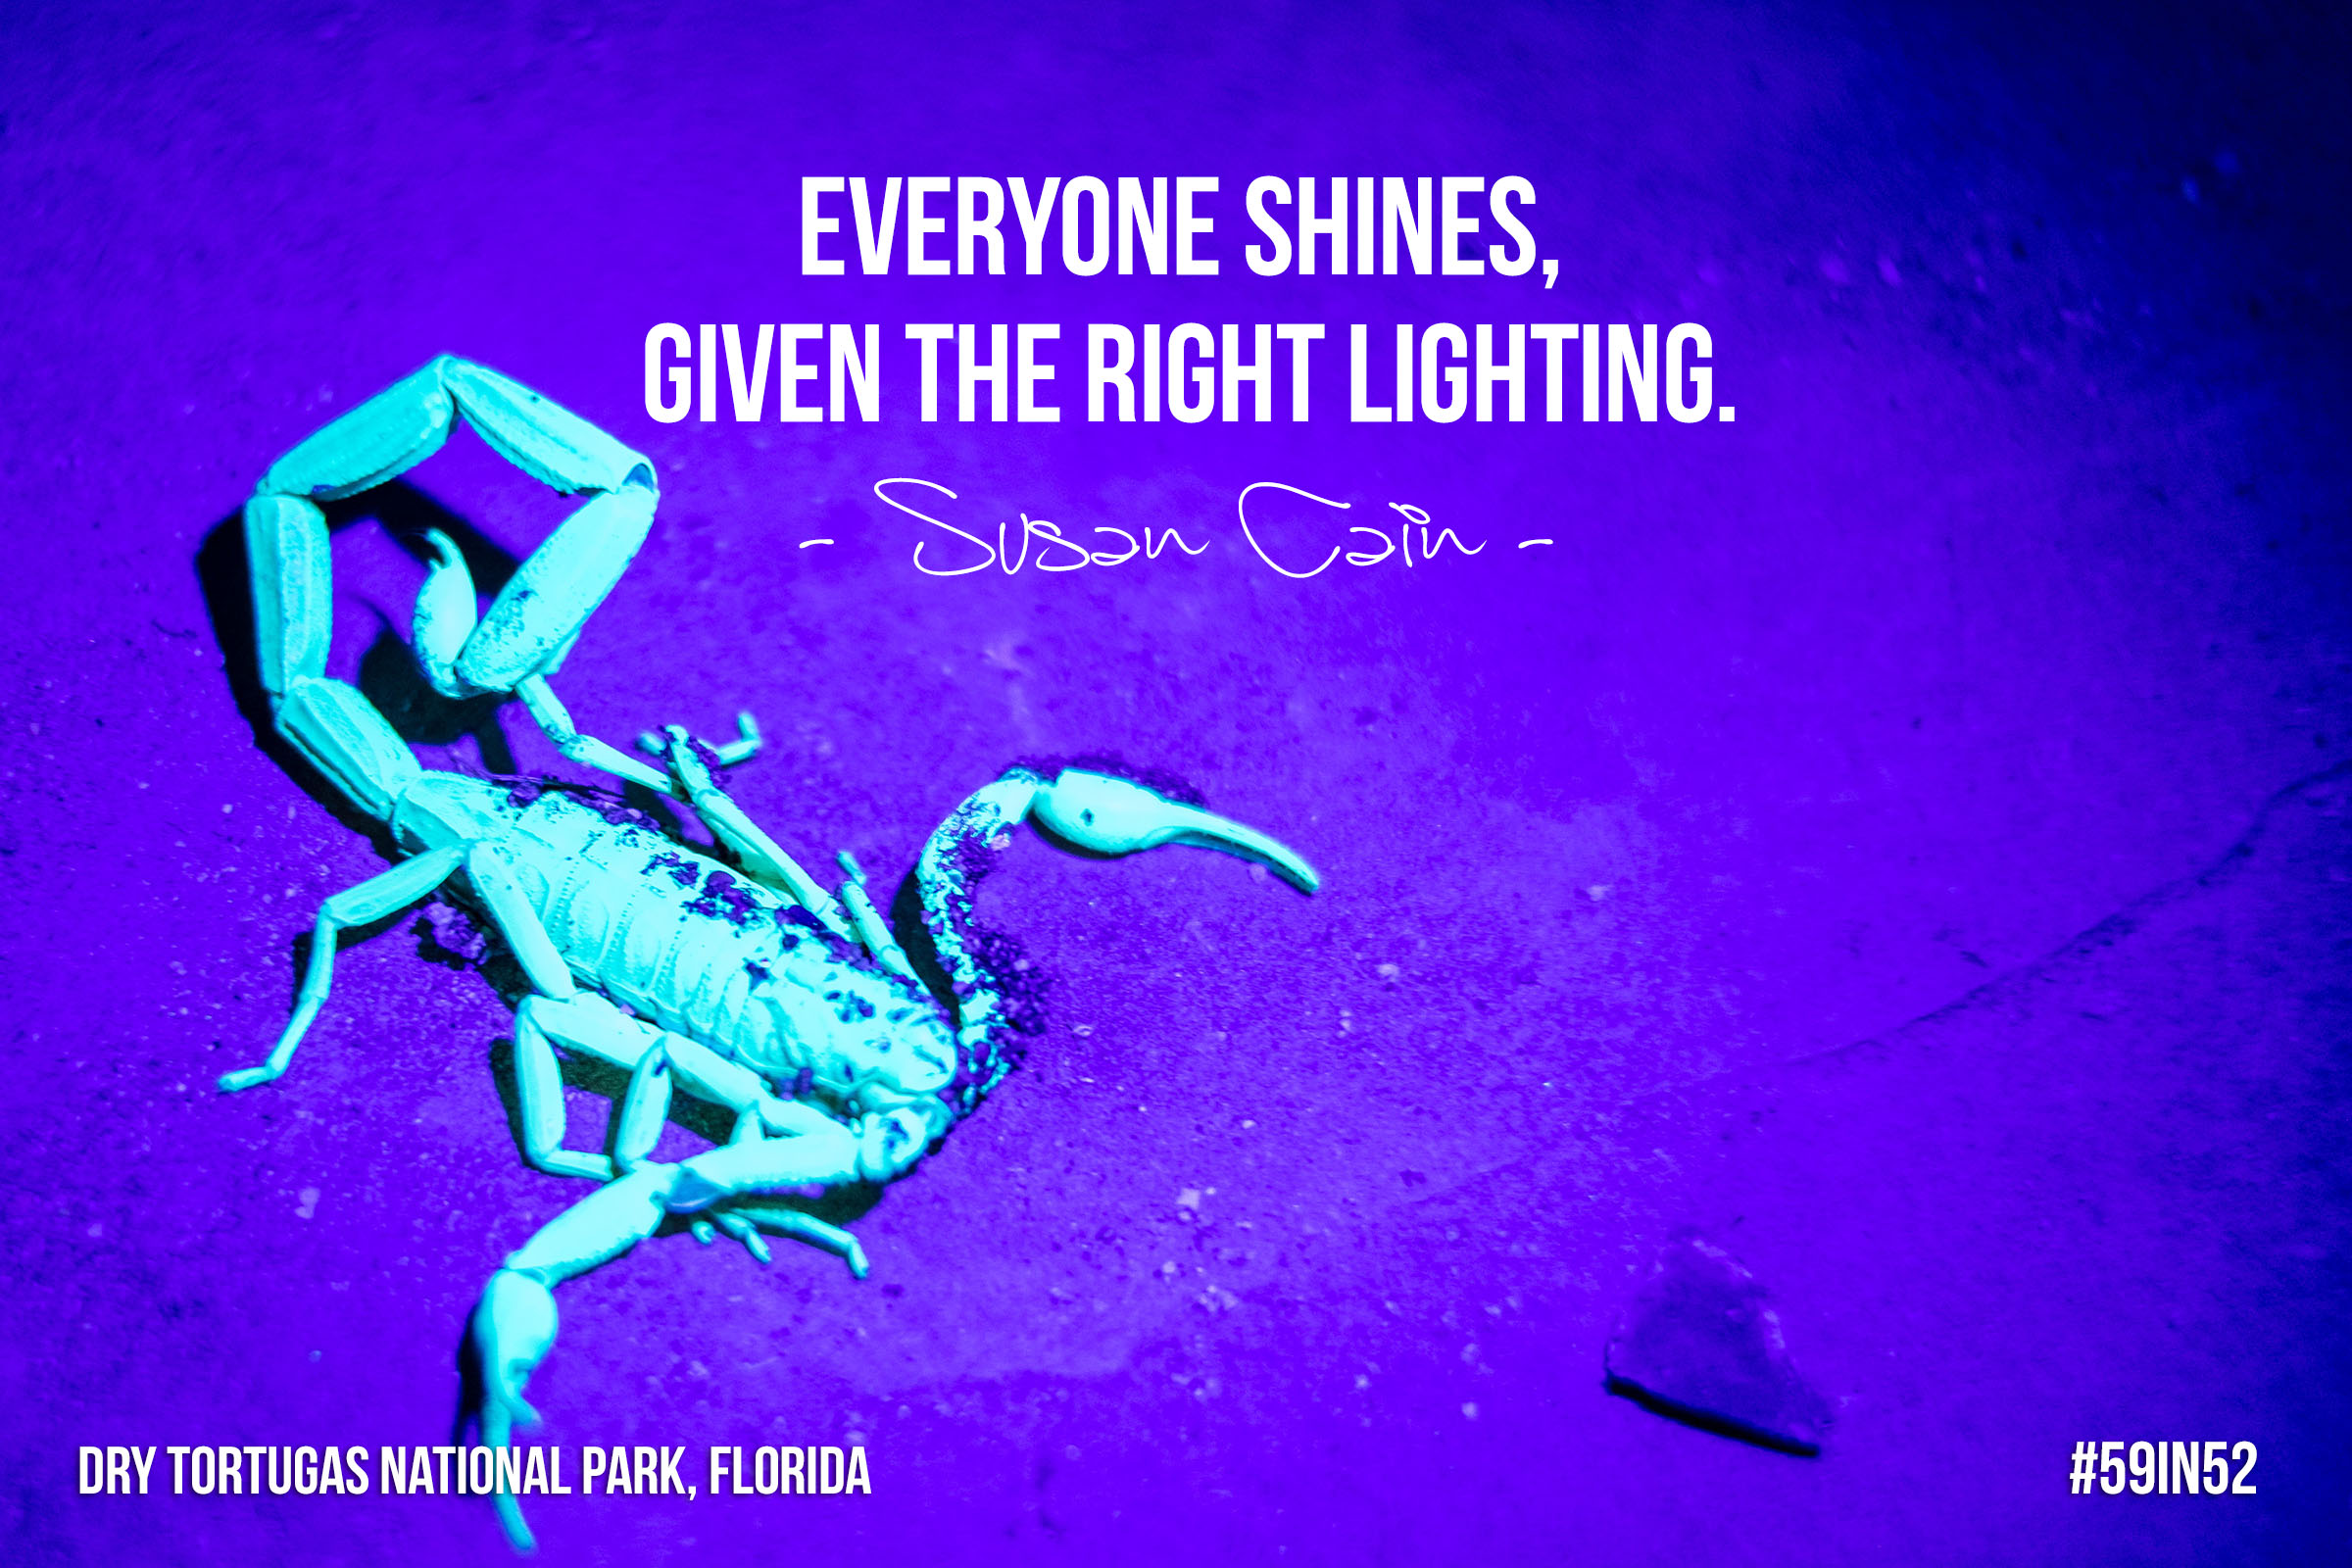 """Everyone shines, given the right lighting."" -- Susan Cain"